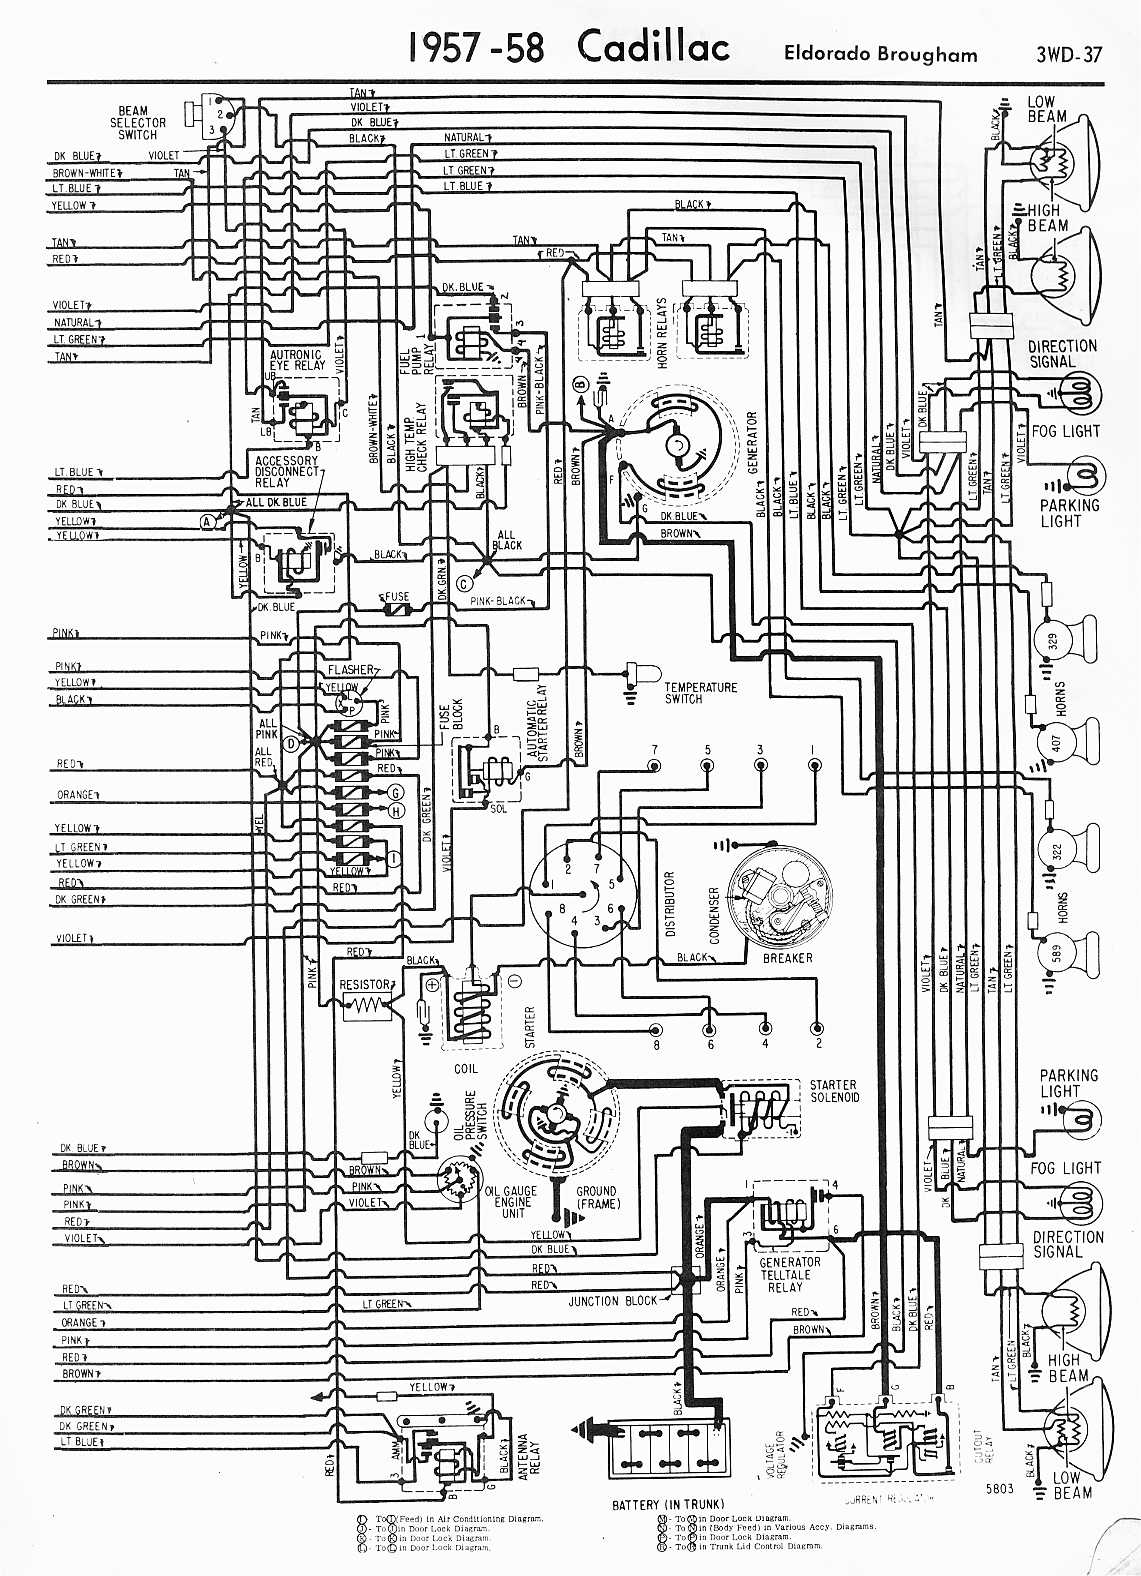 Wiring Diagram 2002 Cadillac Deville Simple Ford Crown Victoria First Generation 1992 1997 Fuse Box Diagrams 1957 1965 Stereo 58 Eldorado Brougham Right